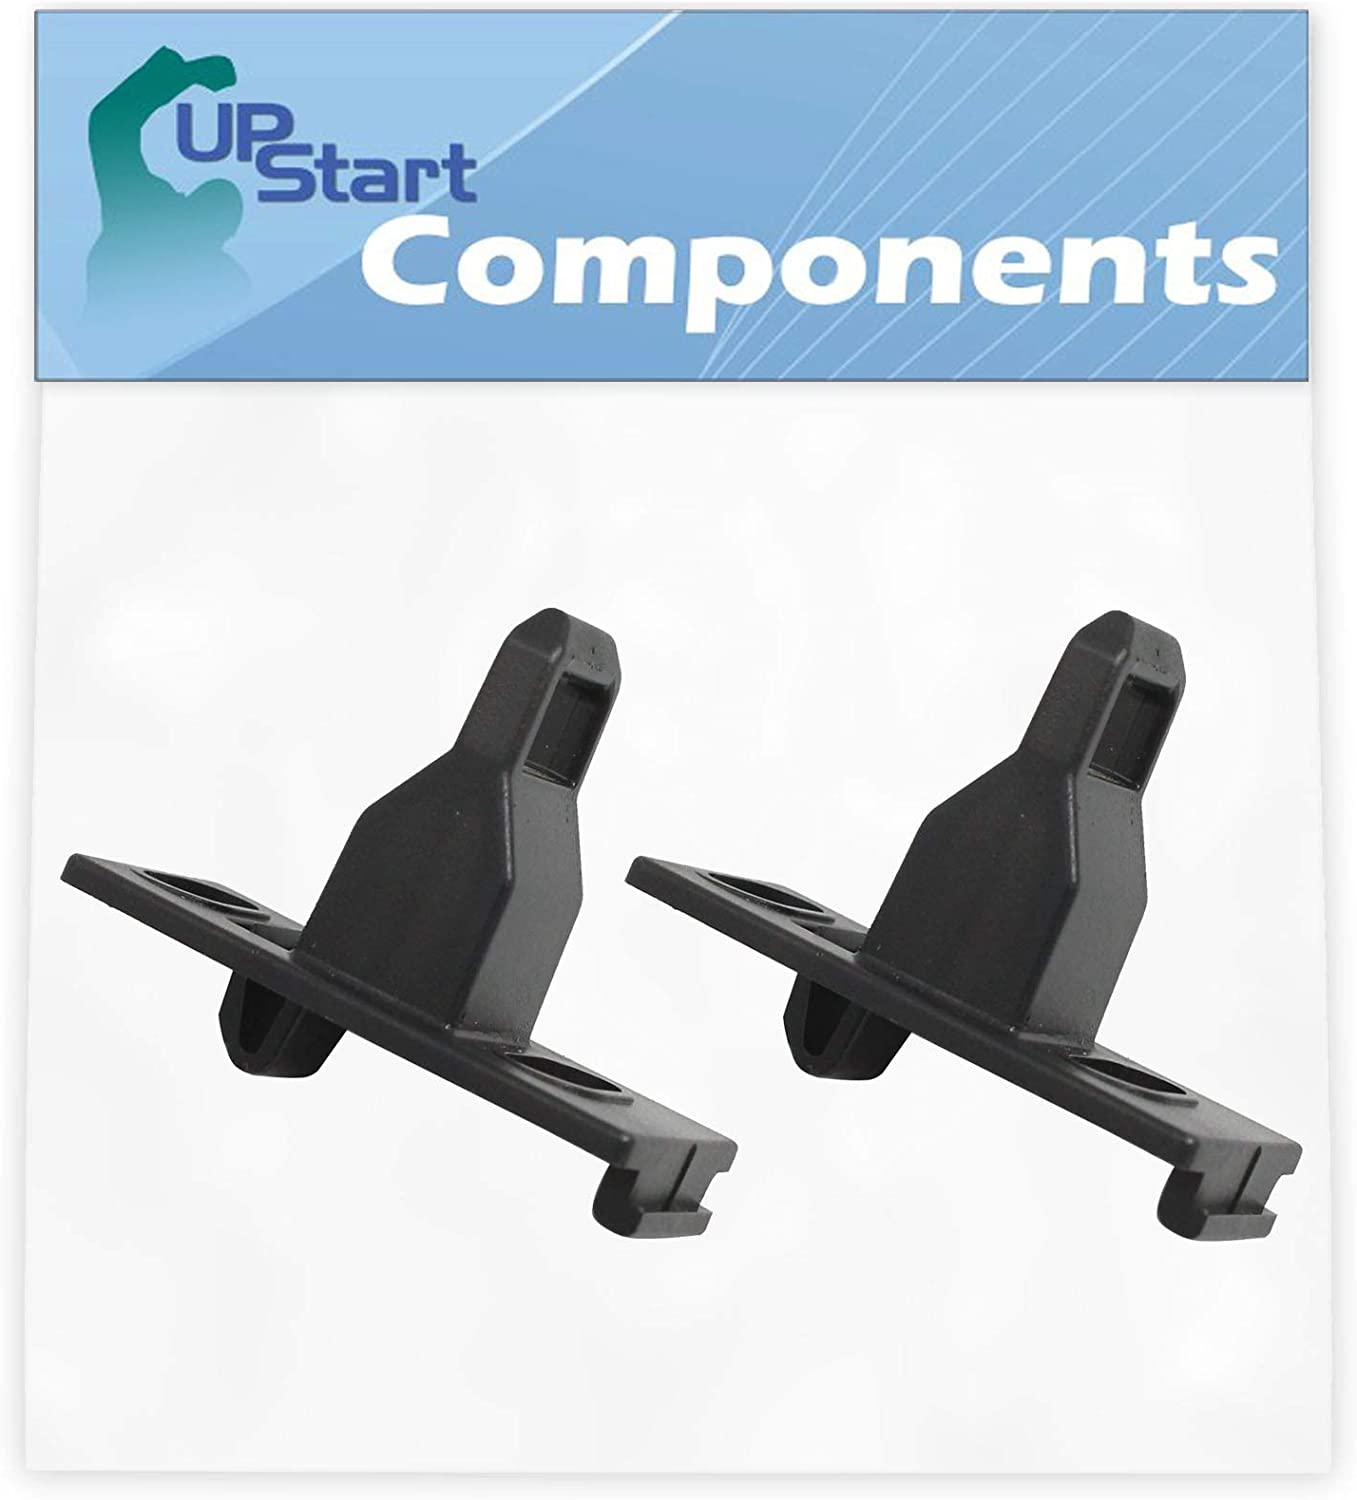 2-Pack 8181651 Washer Door Strike Replacement Sears for Kenmore Fees free Large special price !!